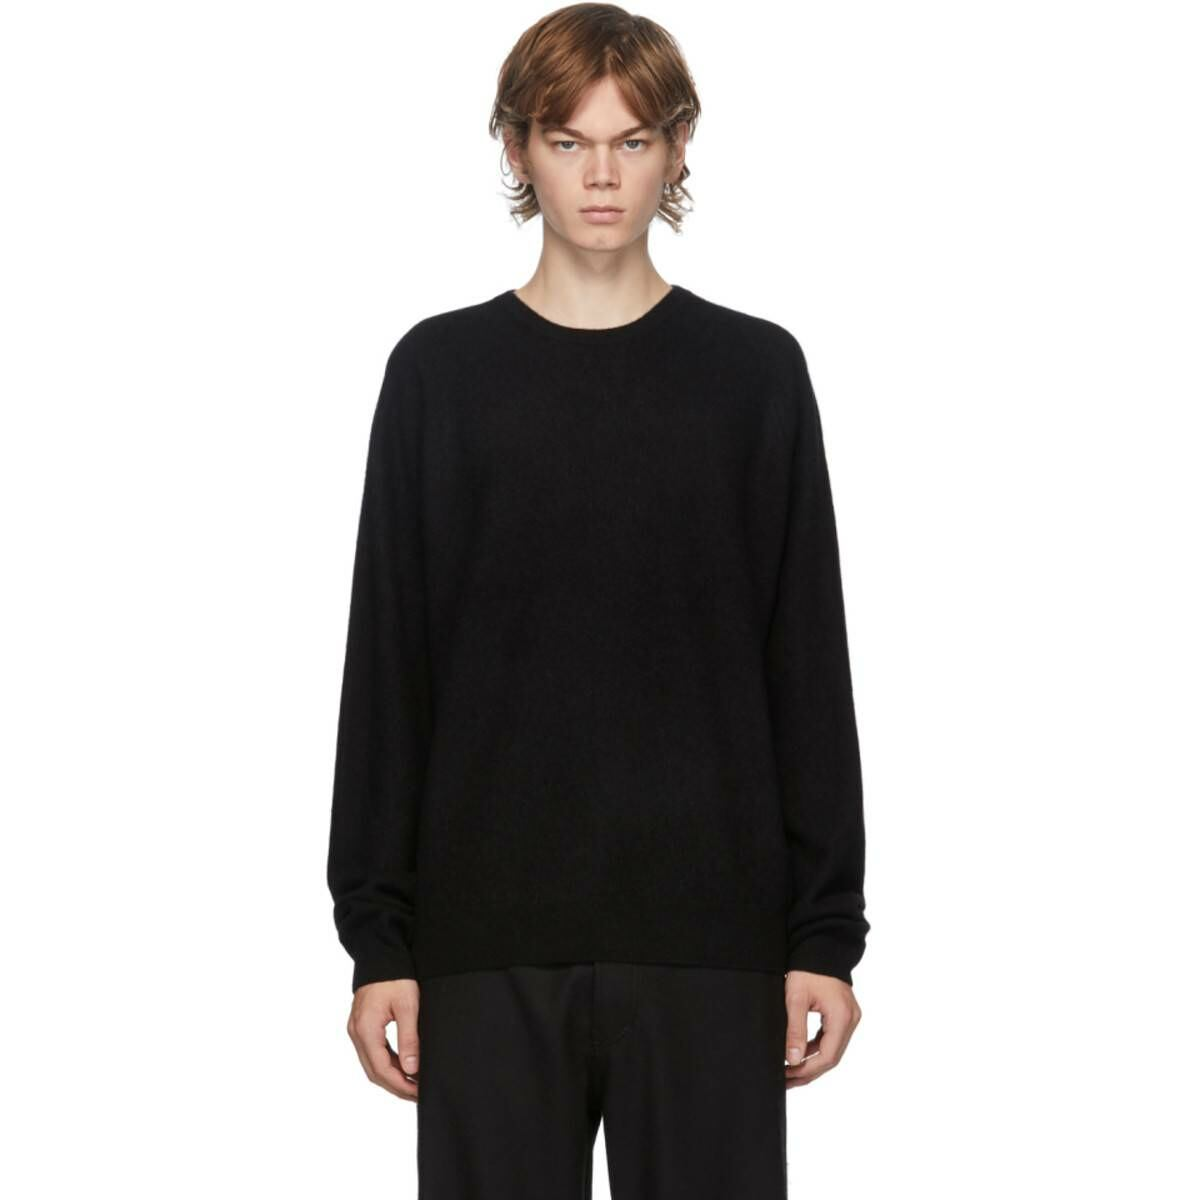 Frenckenberger Black Cashmere Boyfriend Sweater Ssense USA MEN Men FASHION Mens KNITWEAR